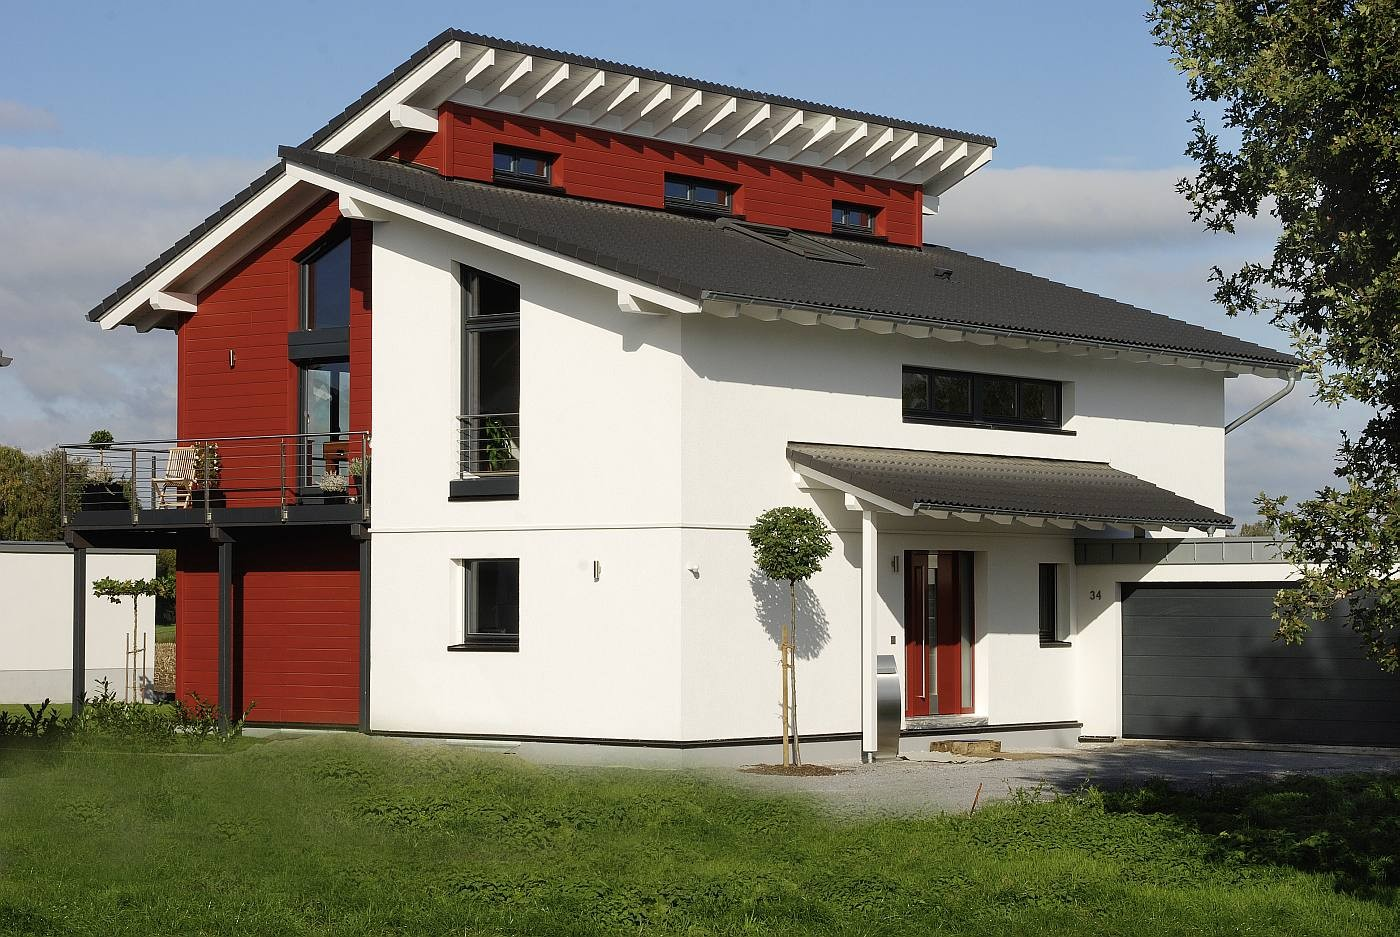 3 4 bedroom luxury contemporary homes stommel haus uk contemporary luxurious prefabricated german kit house with 3 bedrooms